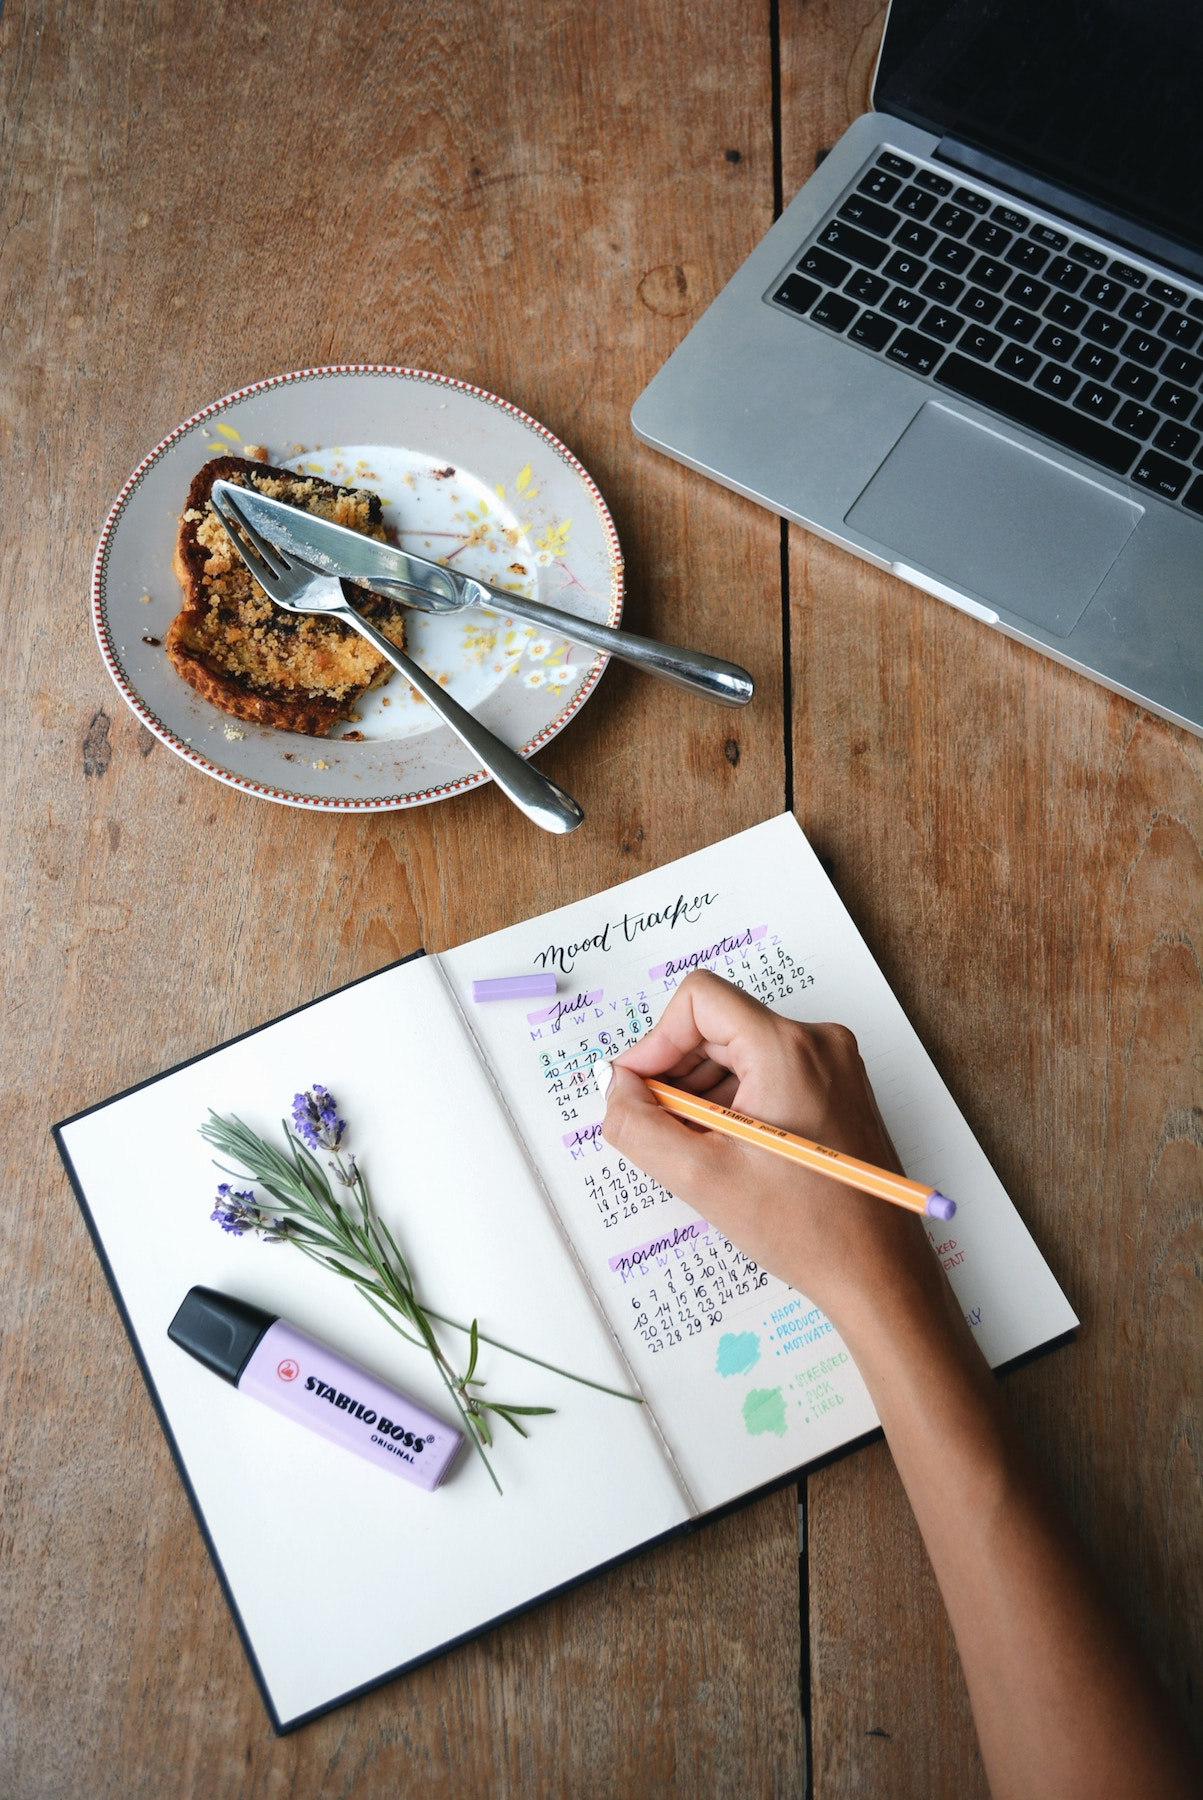 Productivity journal, computer, and markers on wood table